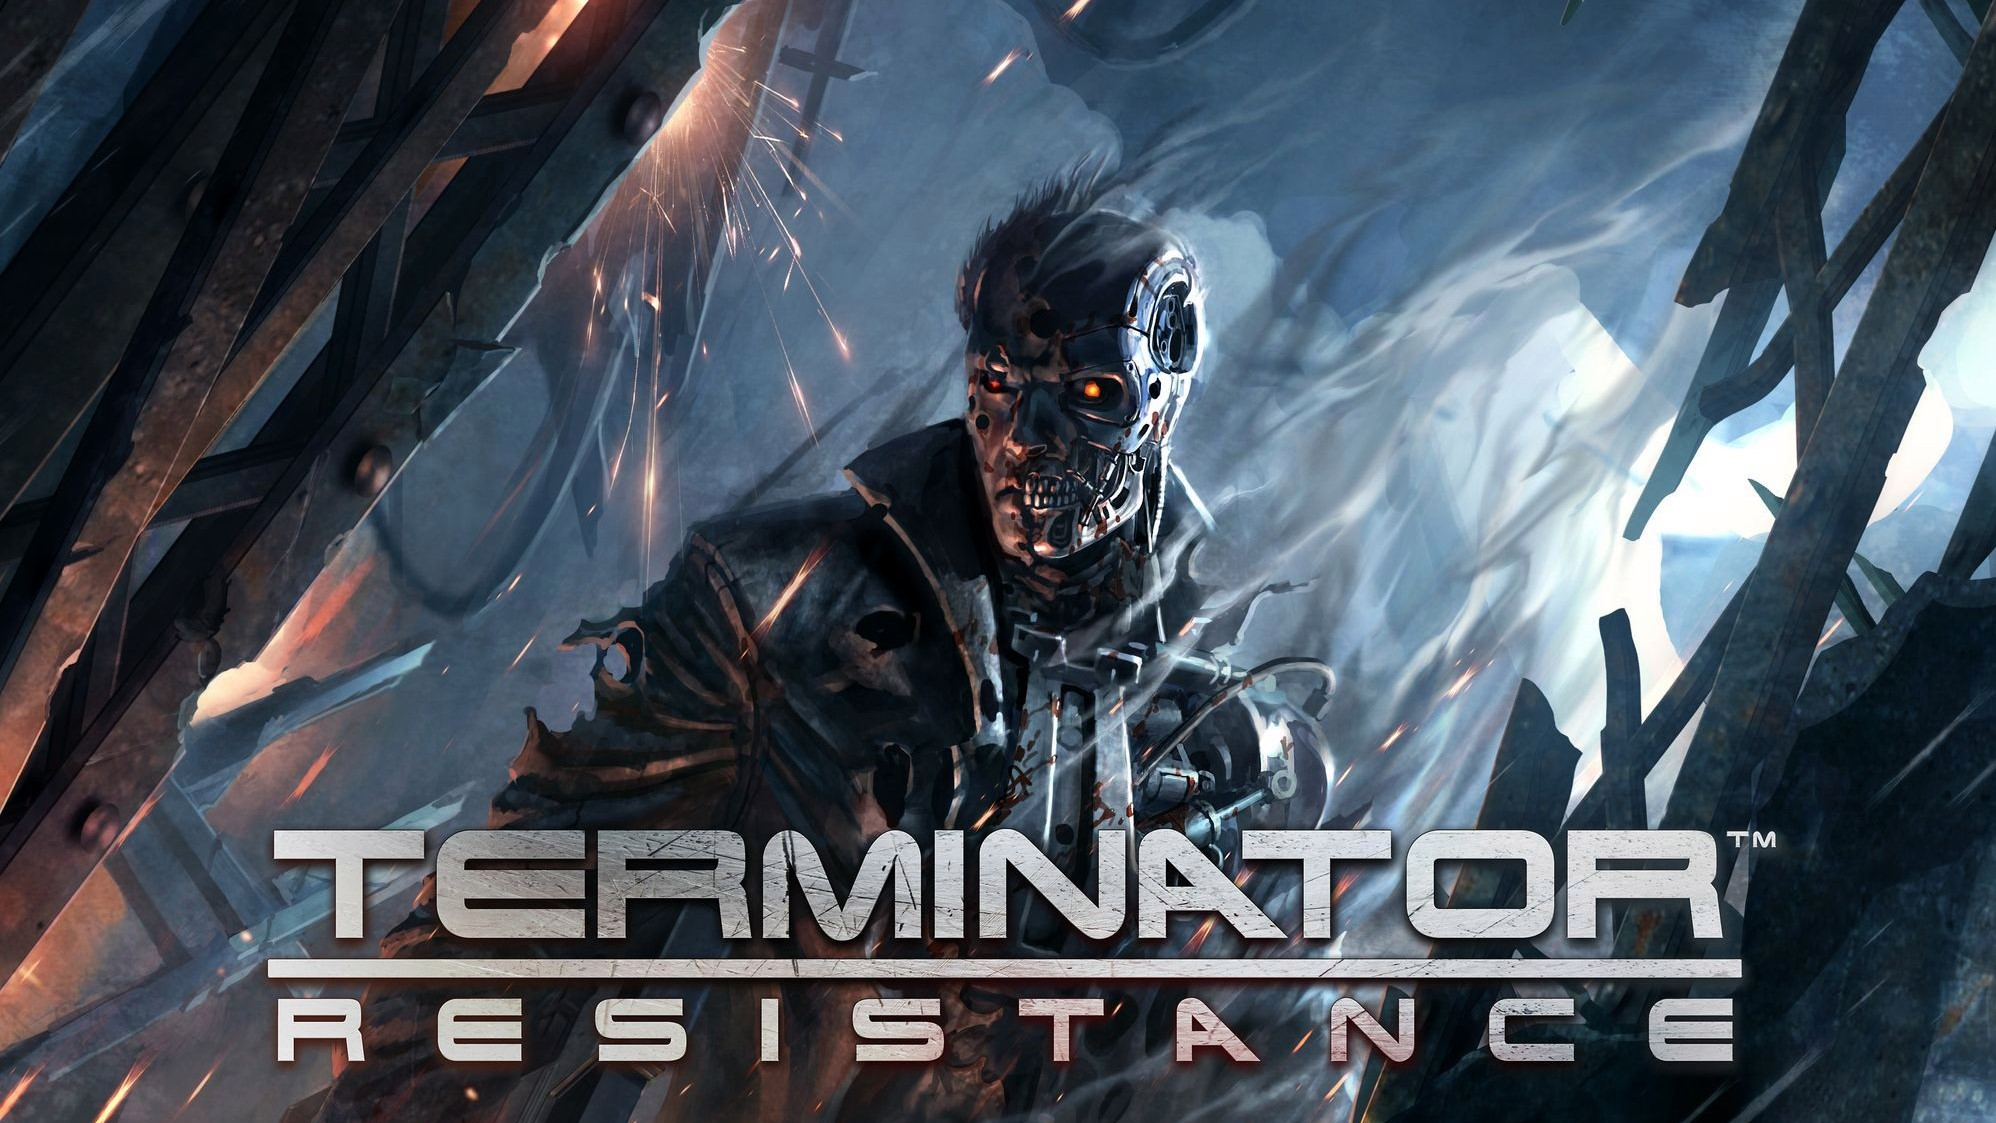 New Terminator videogame announced: Watch the trailer